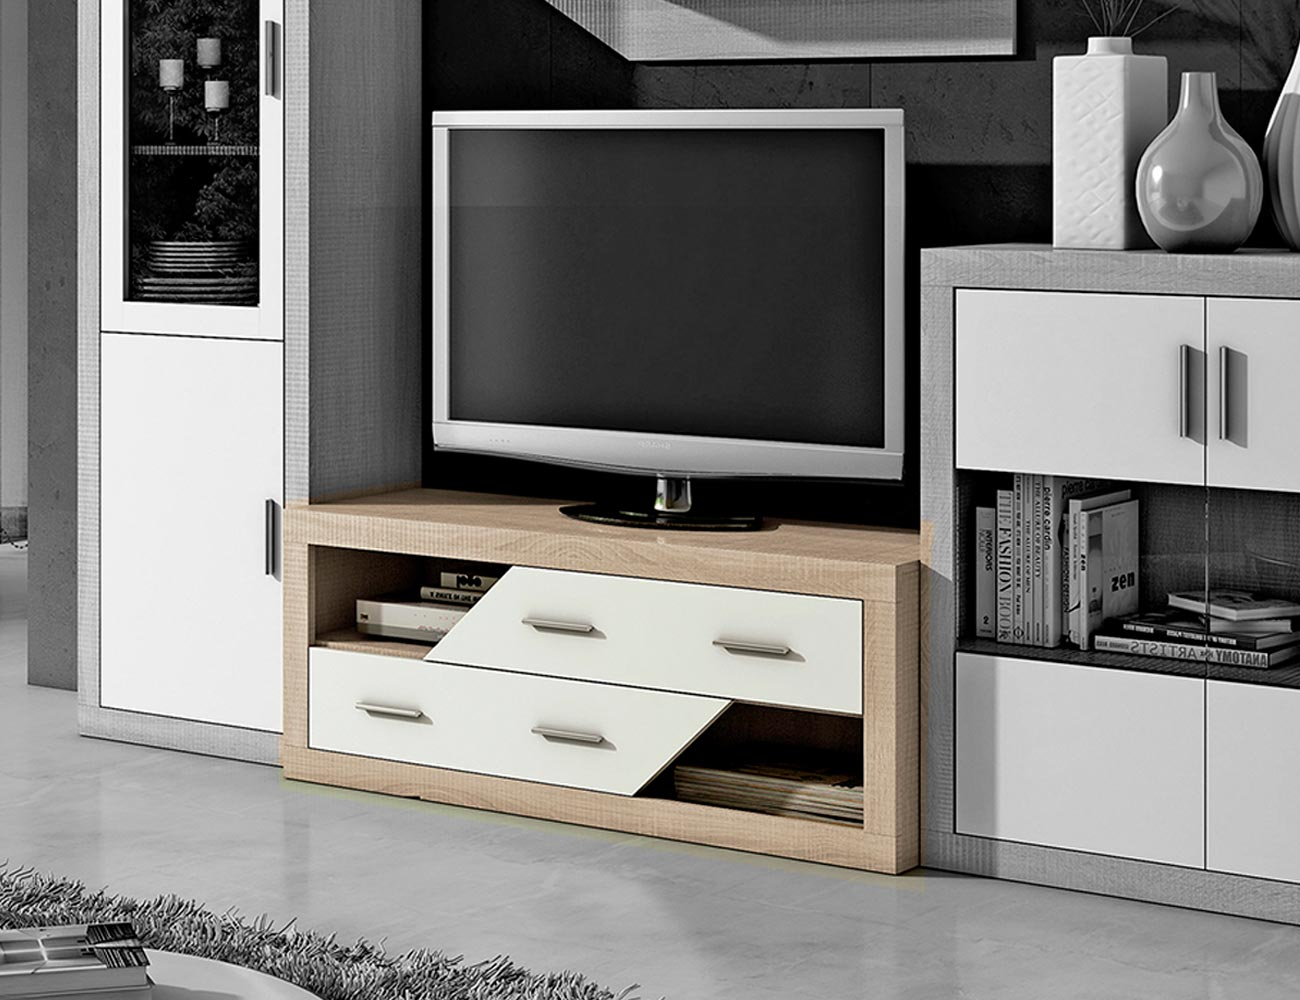 Mueble de sal n estilo moderno color cambrian blanco 240 for Mueble salon 240 cm